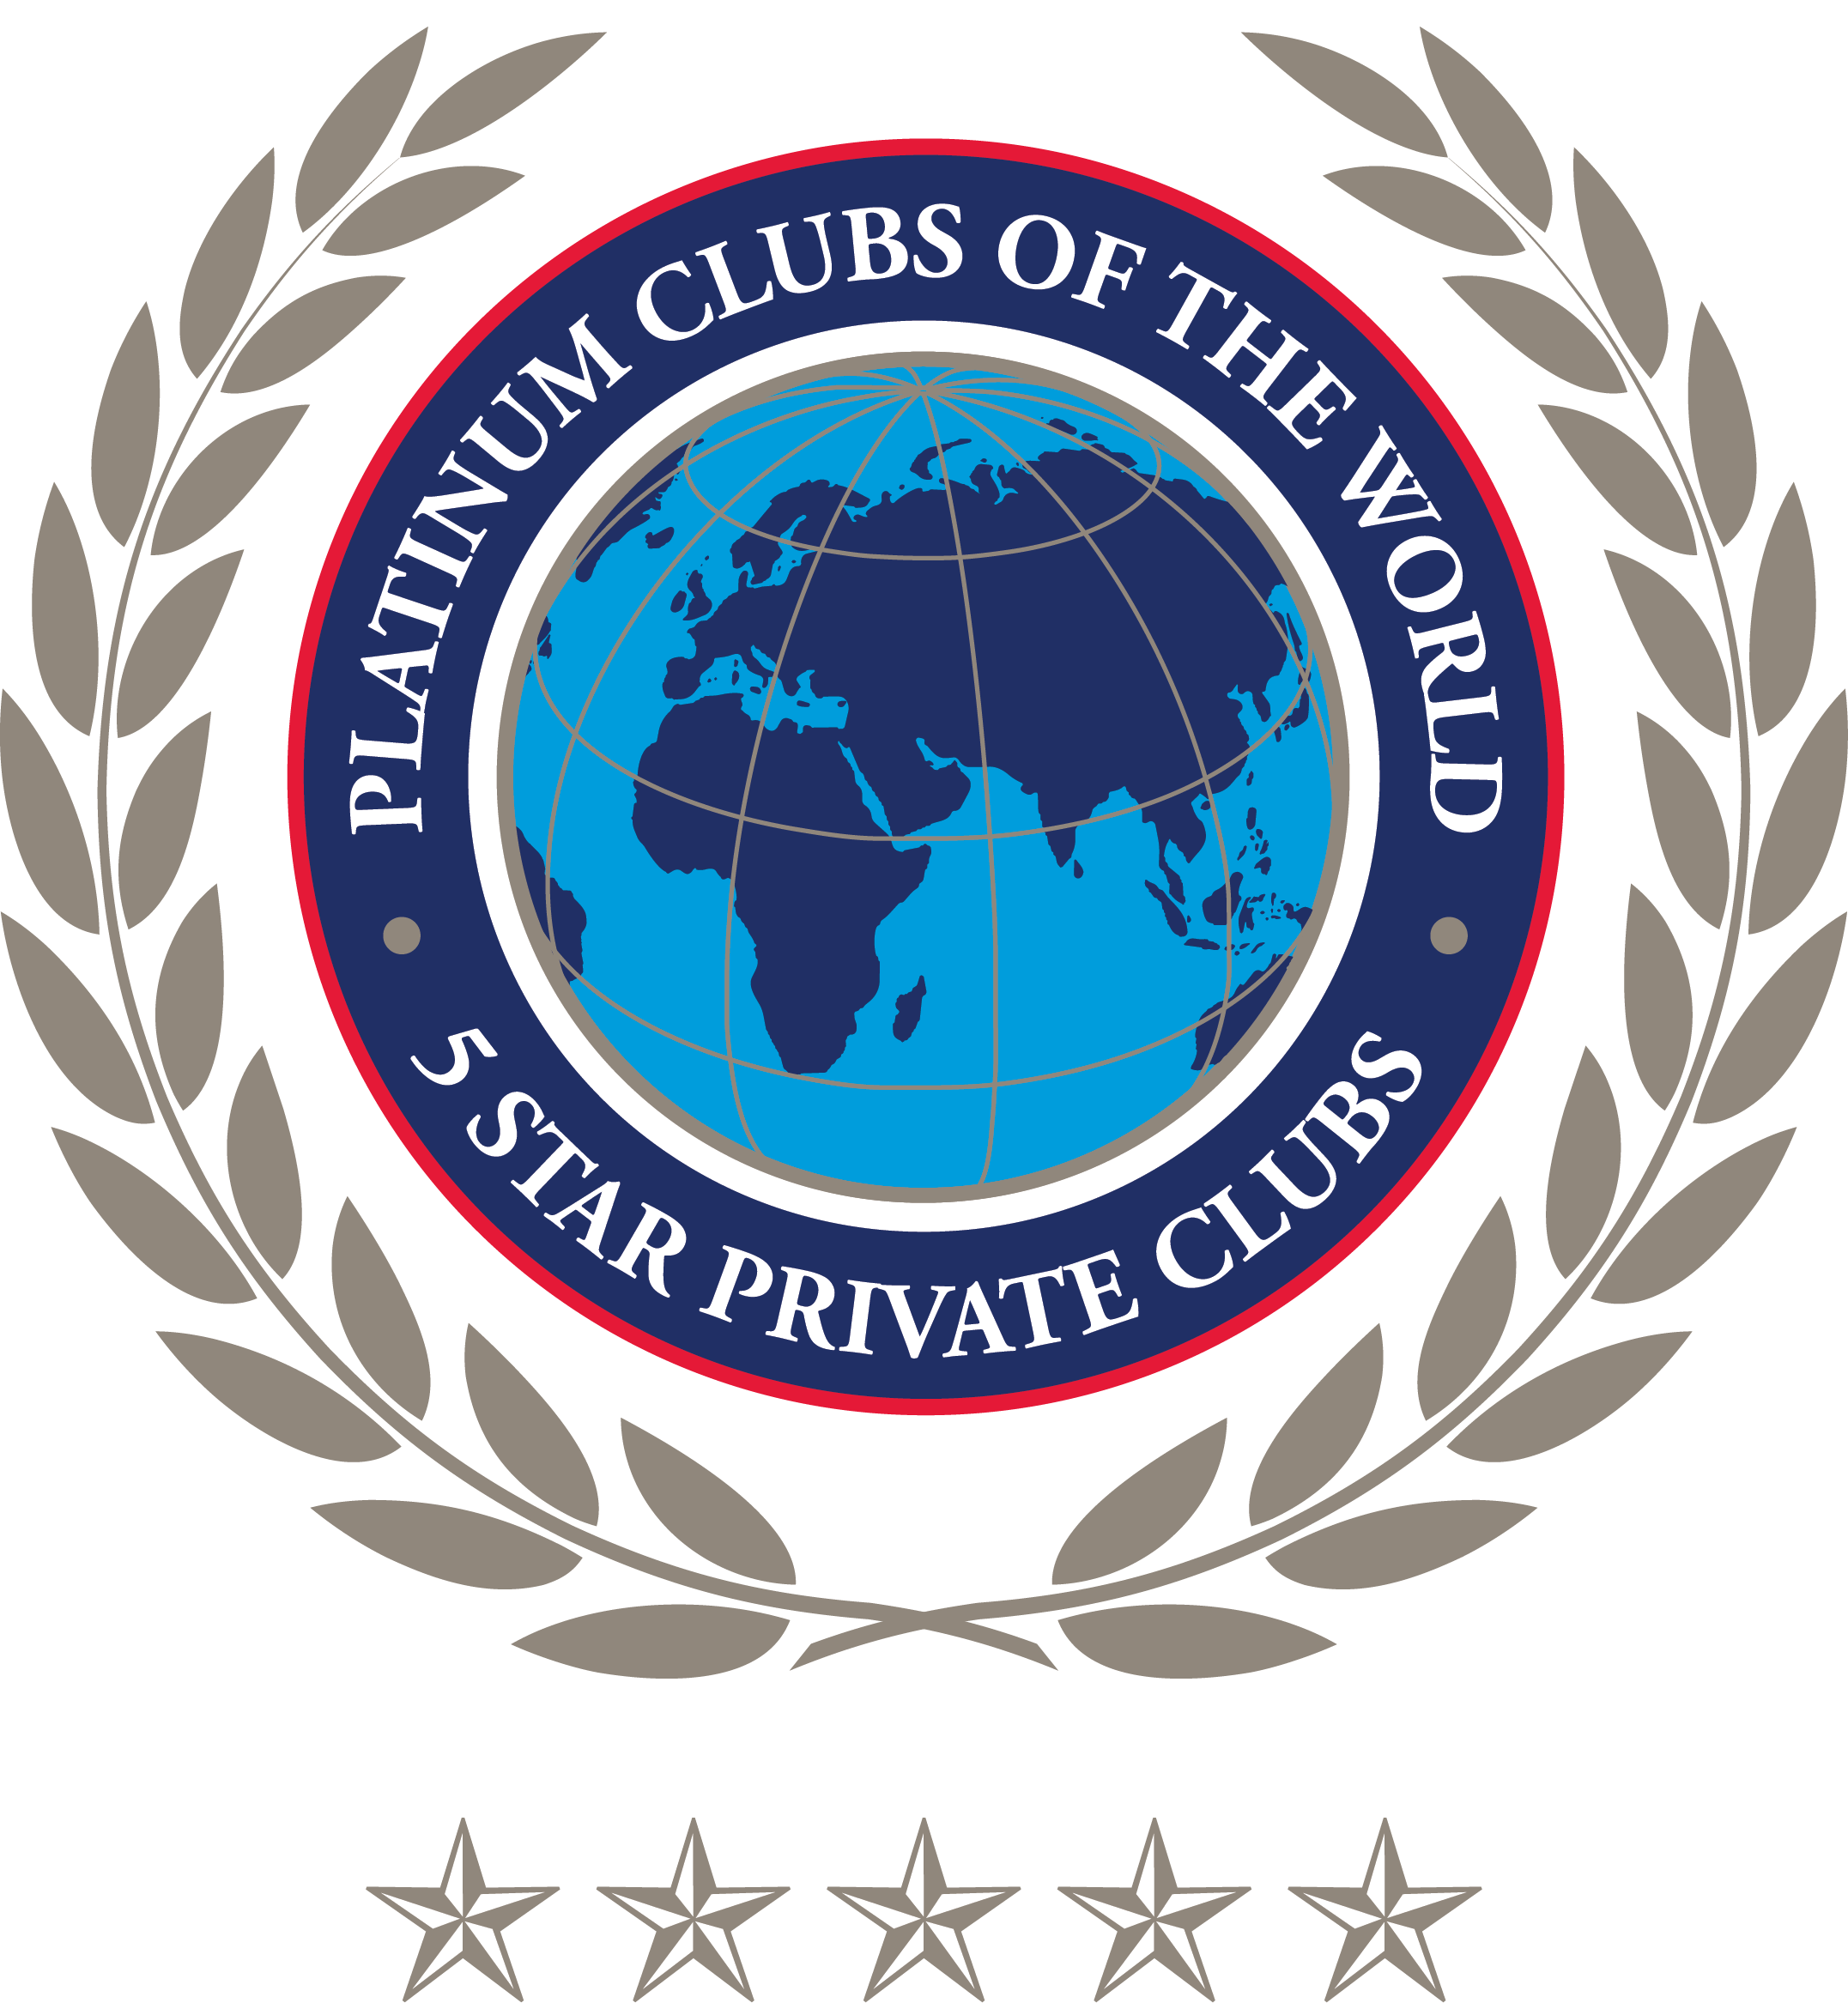 Platinum Clubs of the World award logo